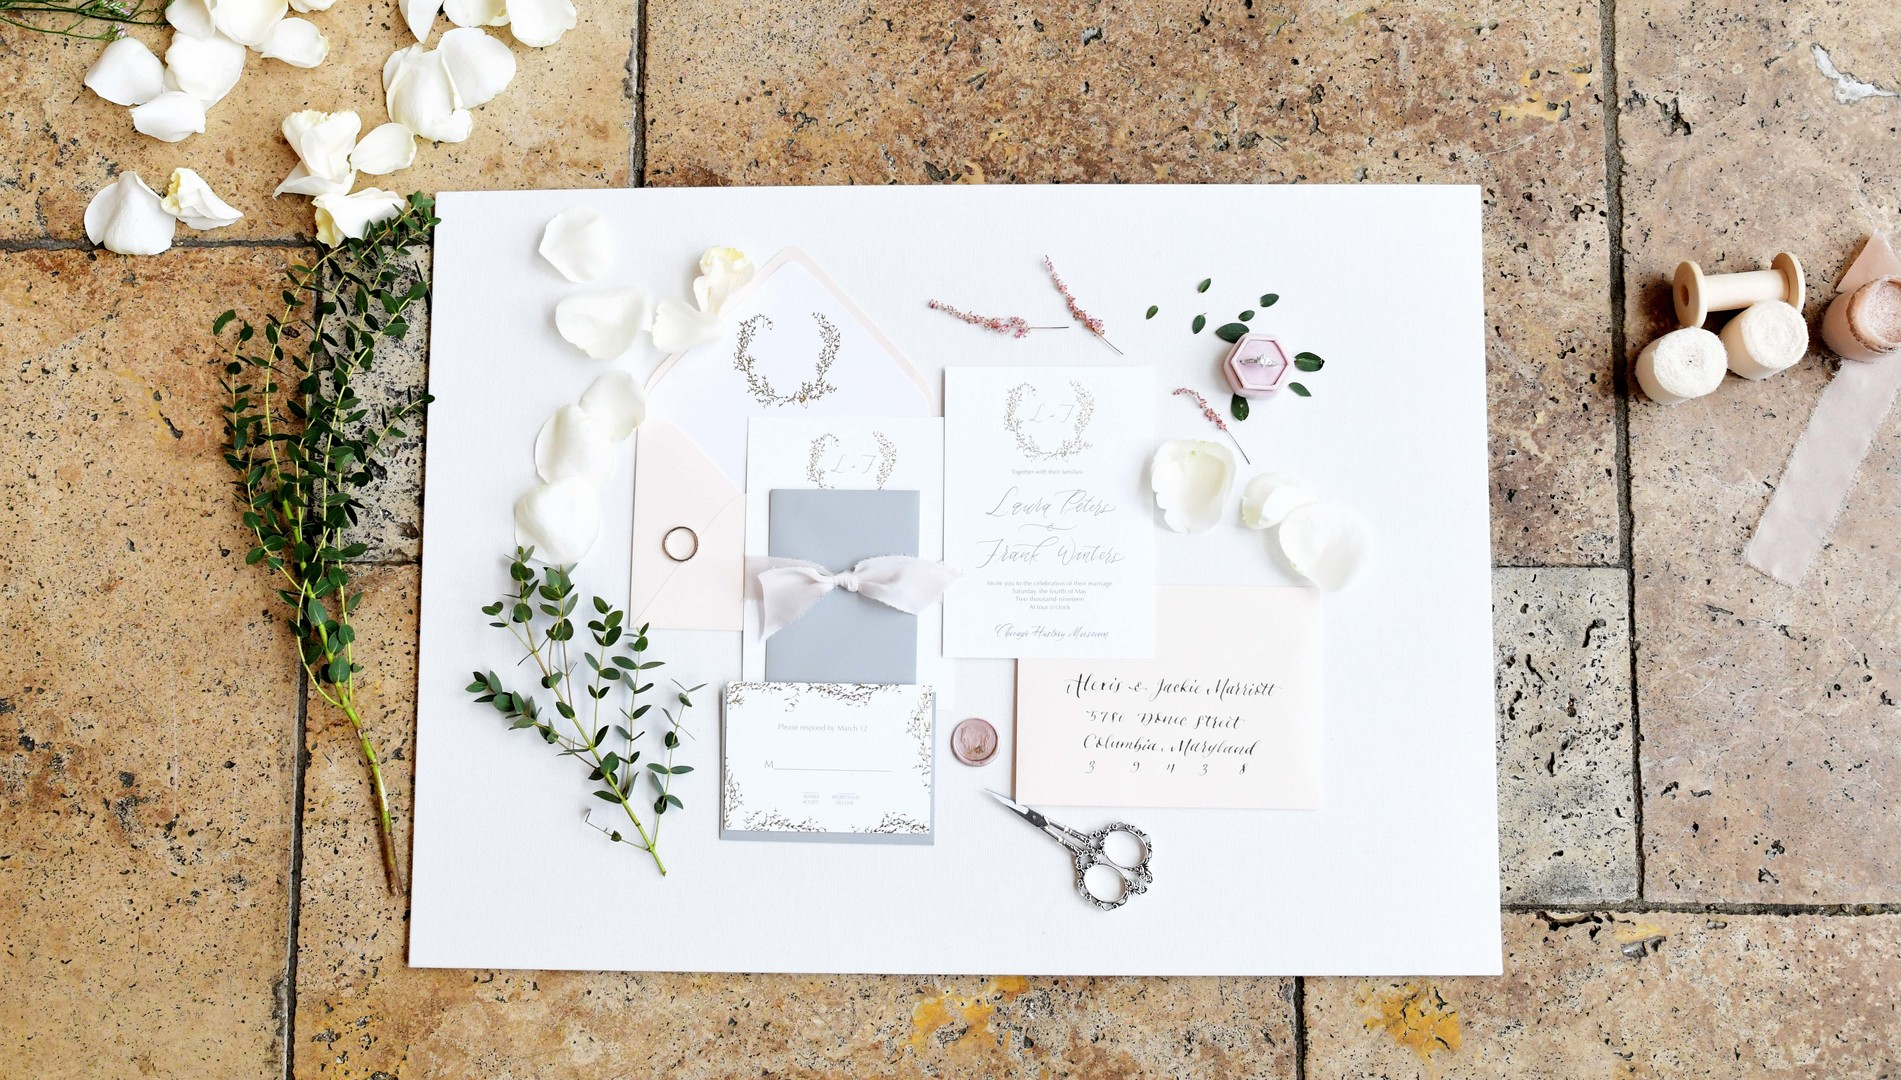 Wedding stationery: Romantic ivory and rose gold wedding inspiration captured by Lori Sapio. See more elegant wedding ideas at CHItheeWED.com!